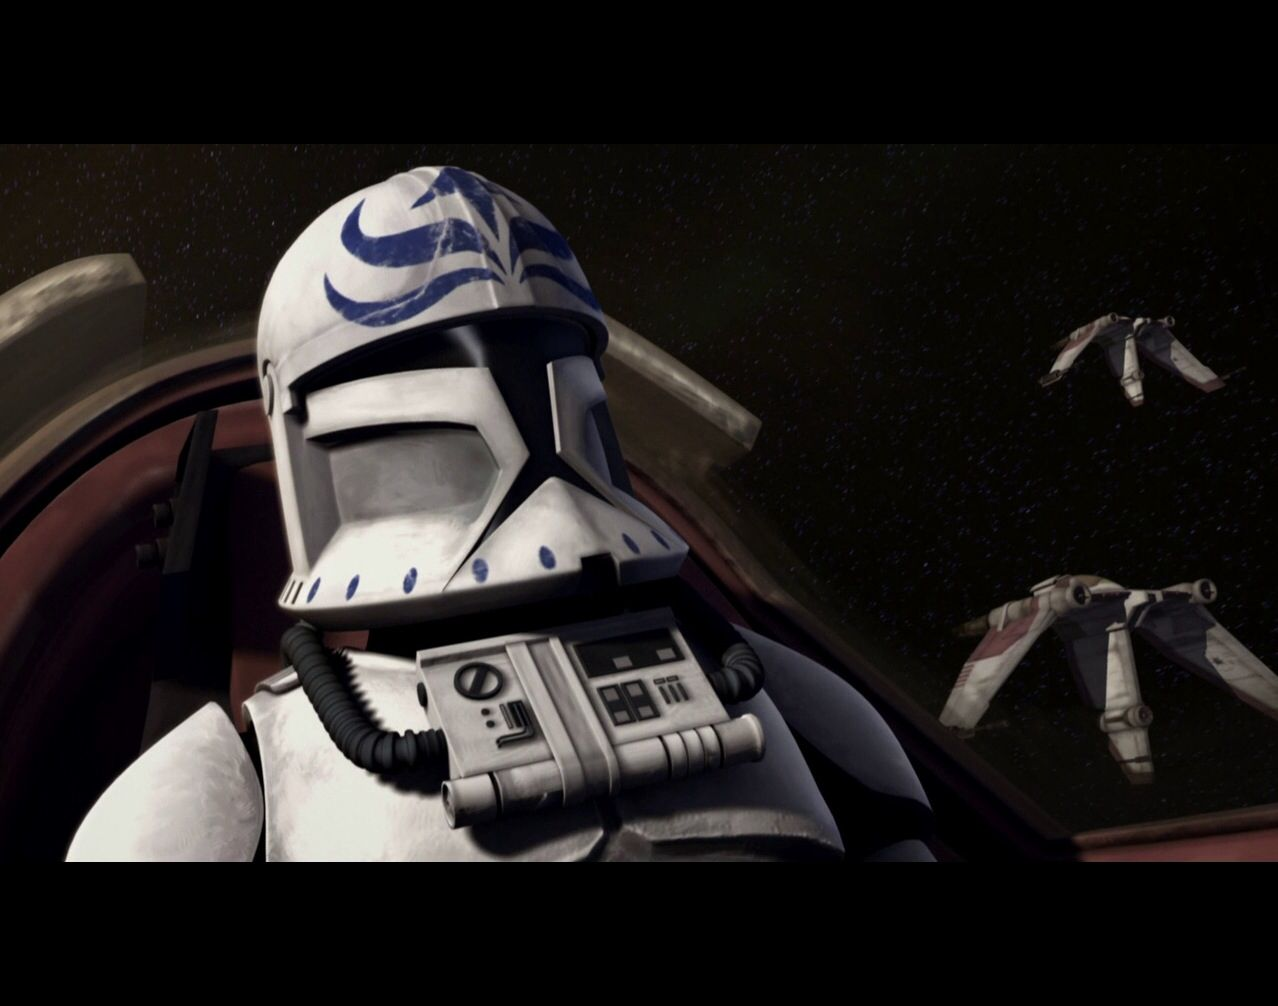 axe is a veteran clone trooper pilot who served in the galactic